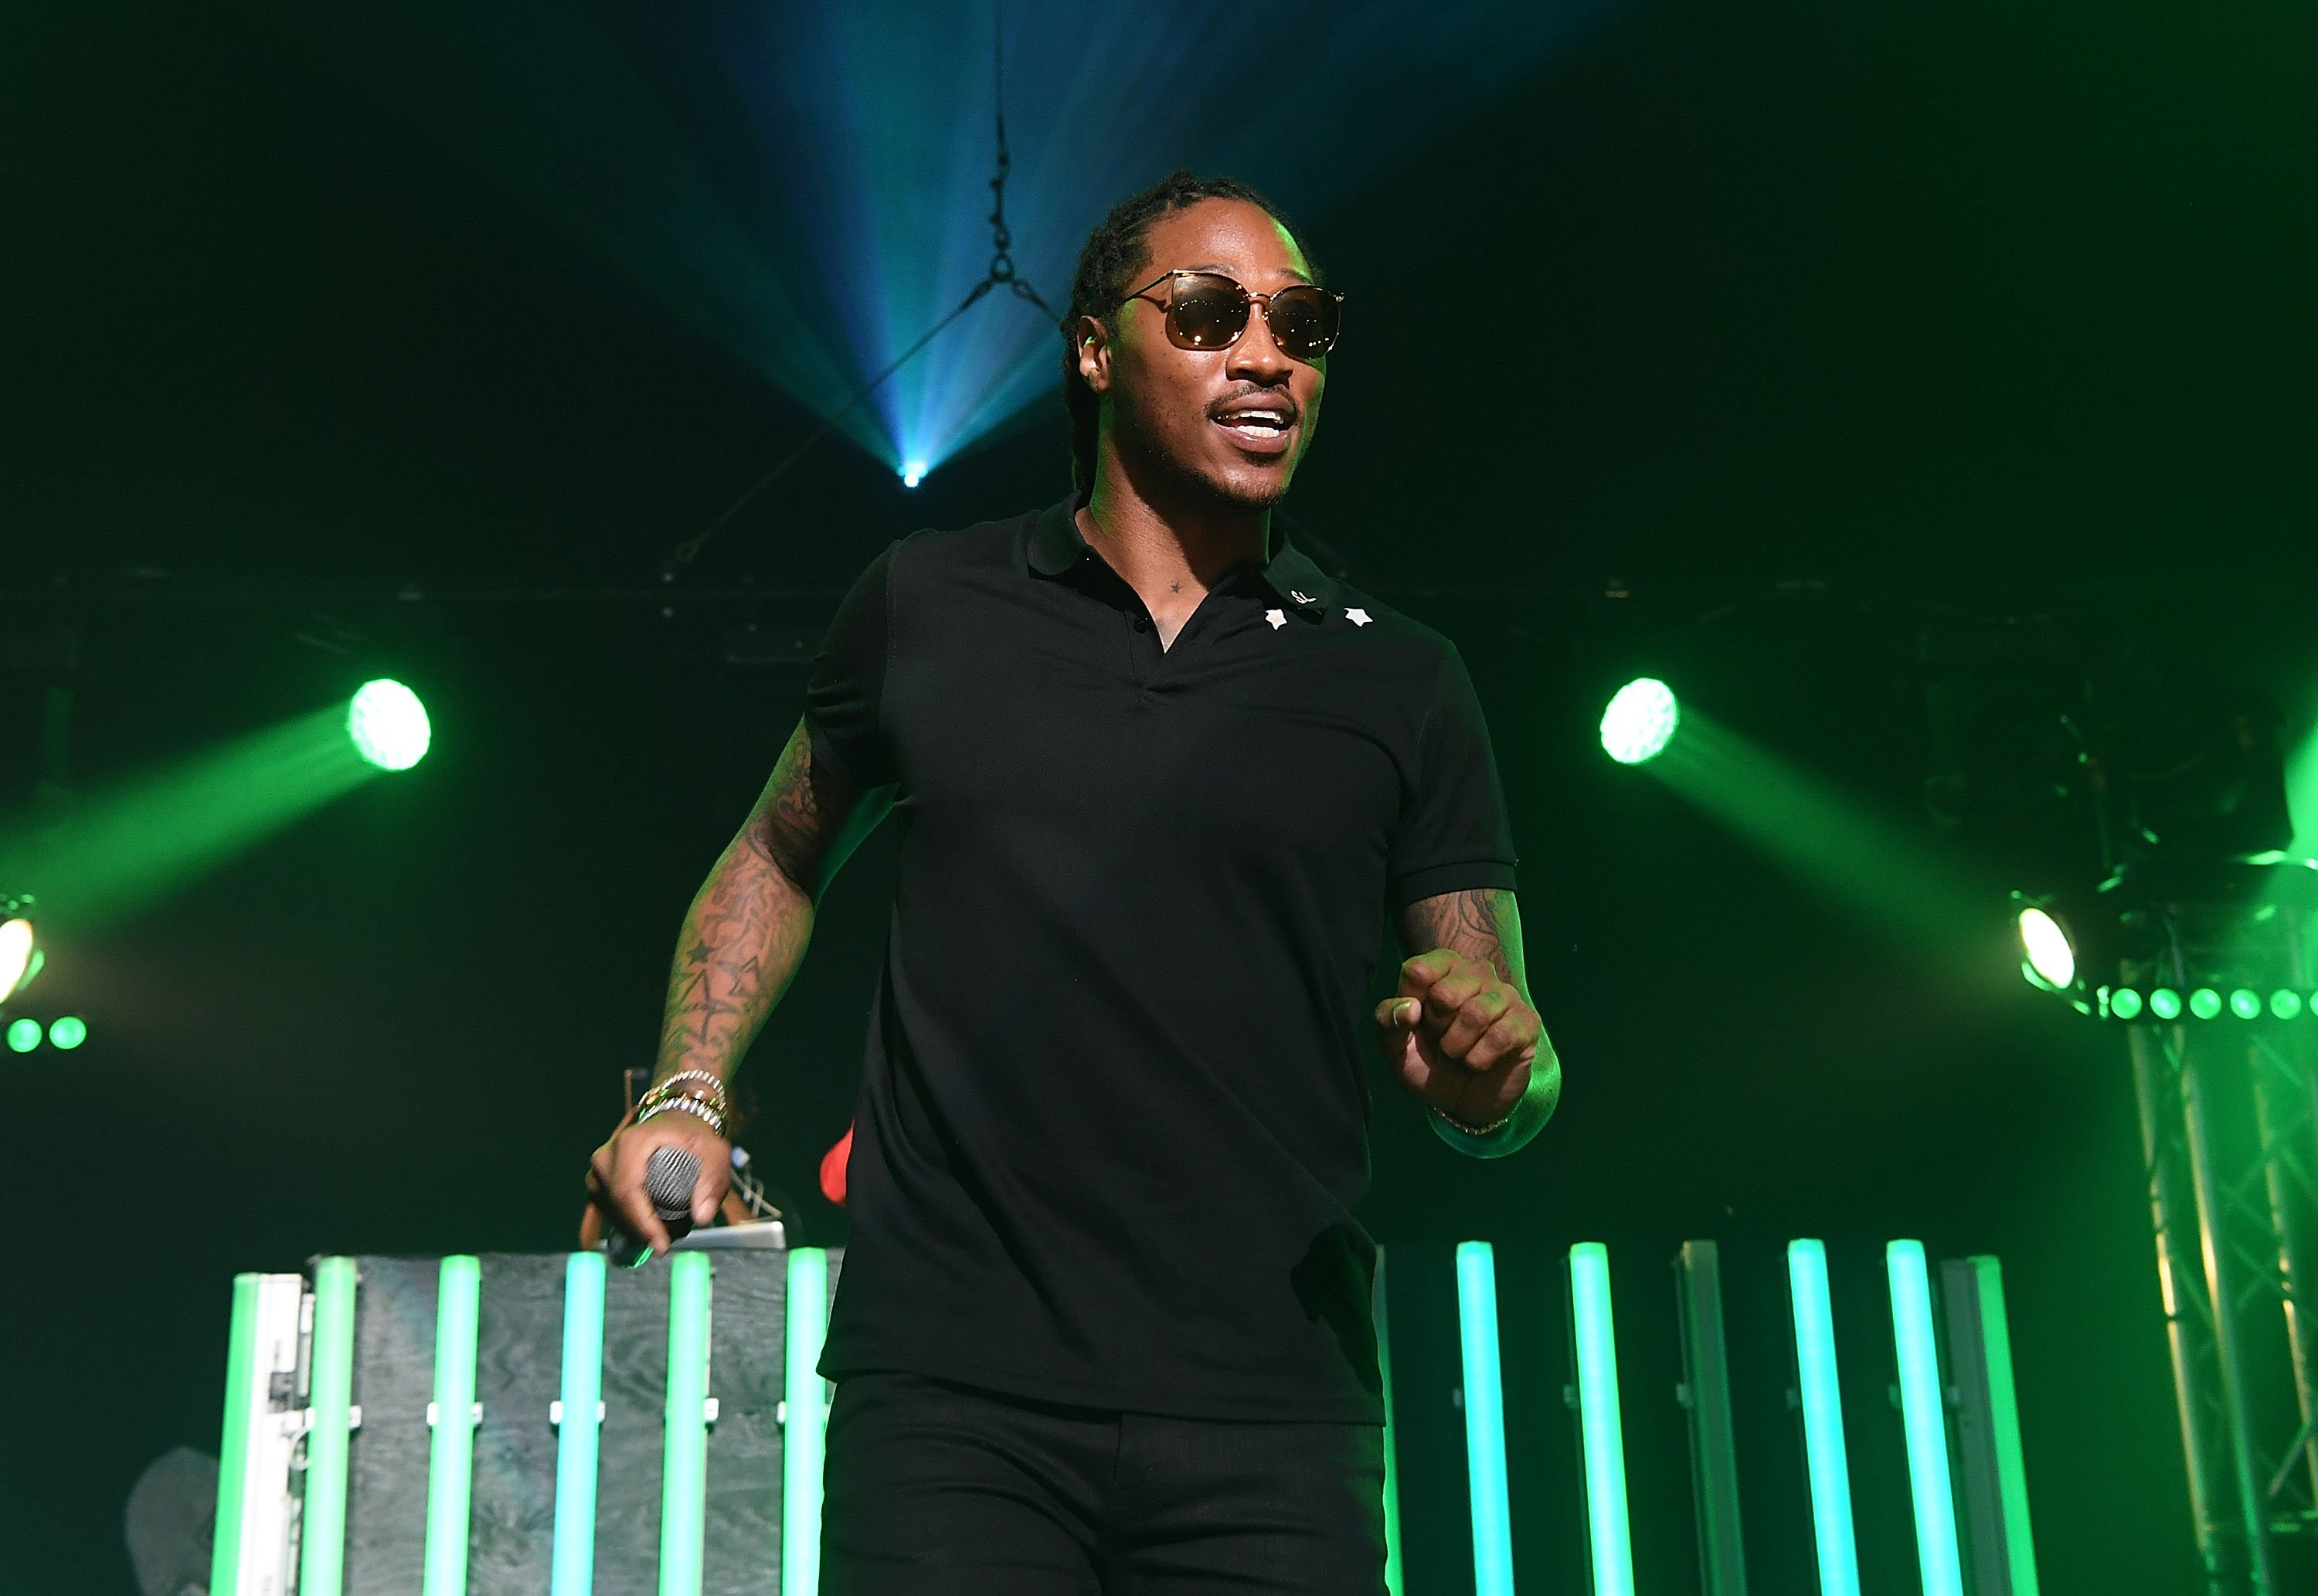 Rapper Future on stage at Gucci and Friends Homecoming Concert in Atlanta, Georgia on July 22, 2016 | Photo: Getty Images